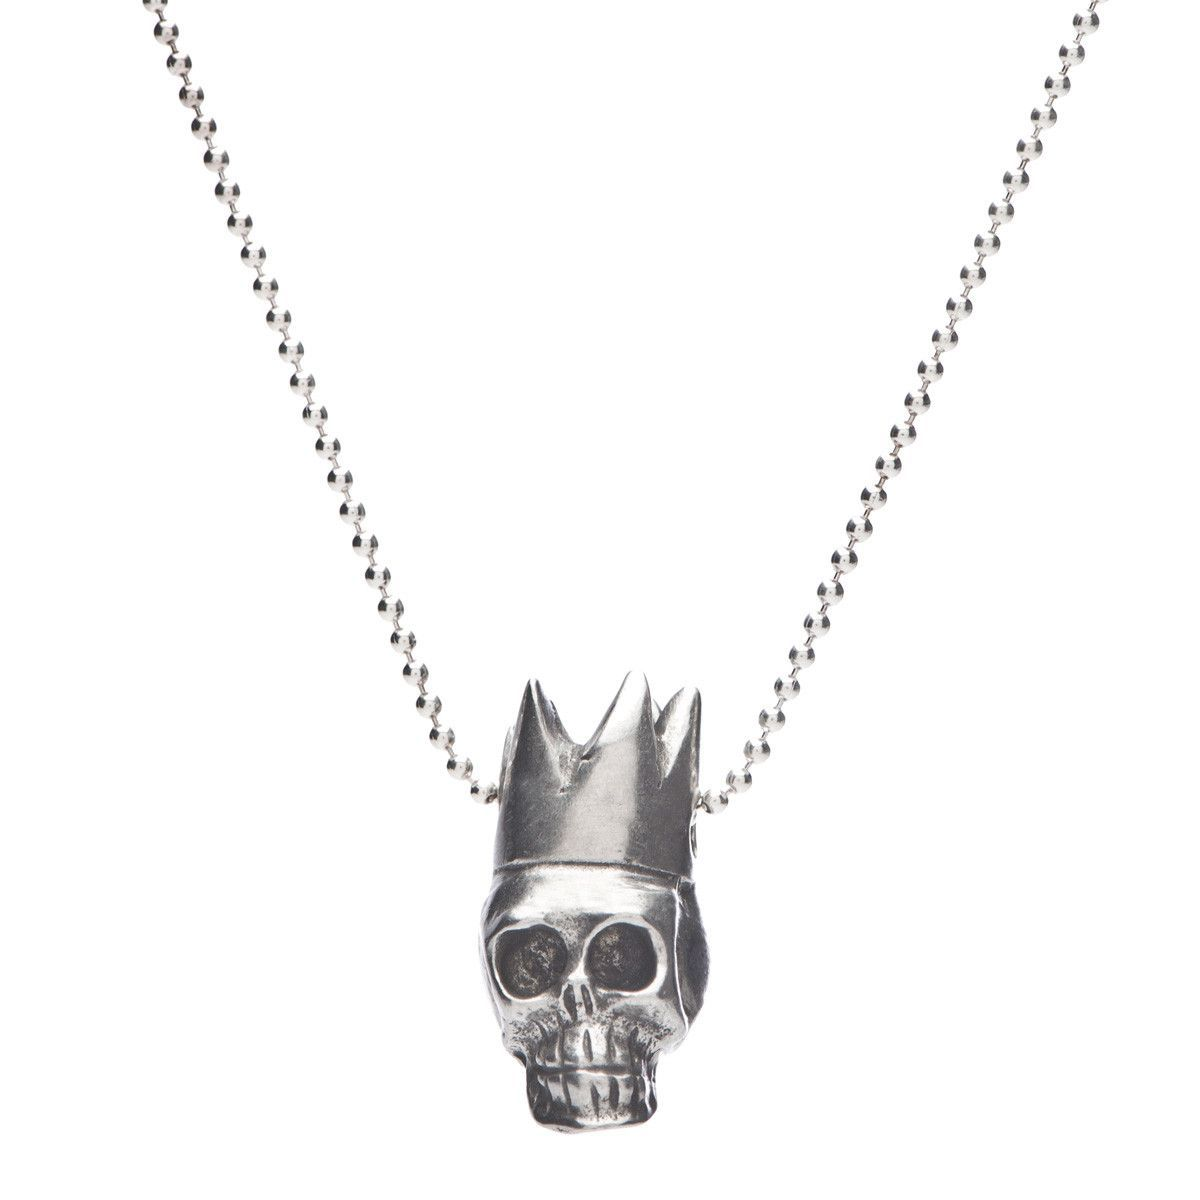 Skull King Necklace in Pewter